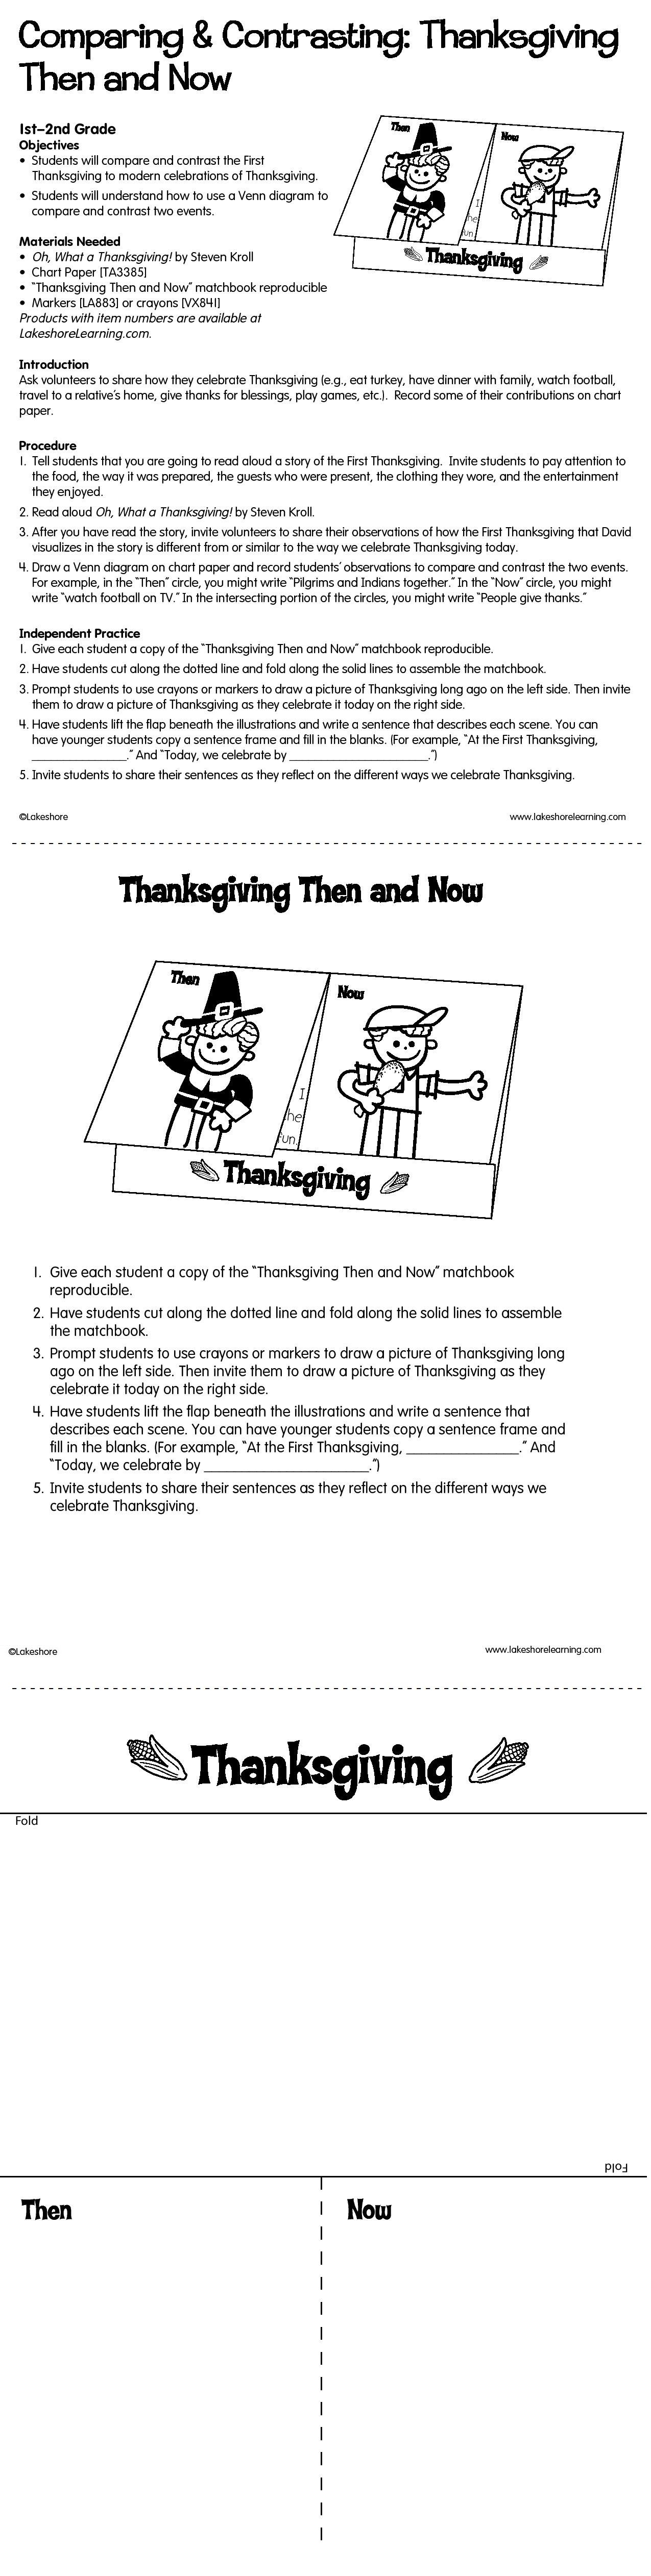 How Is The First Thanksgiving Different From Today S